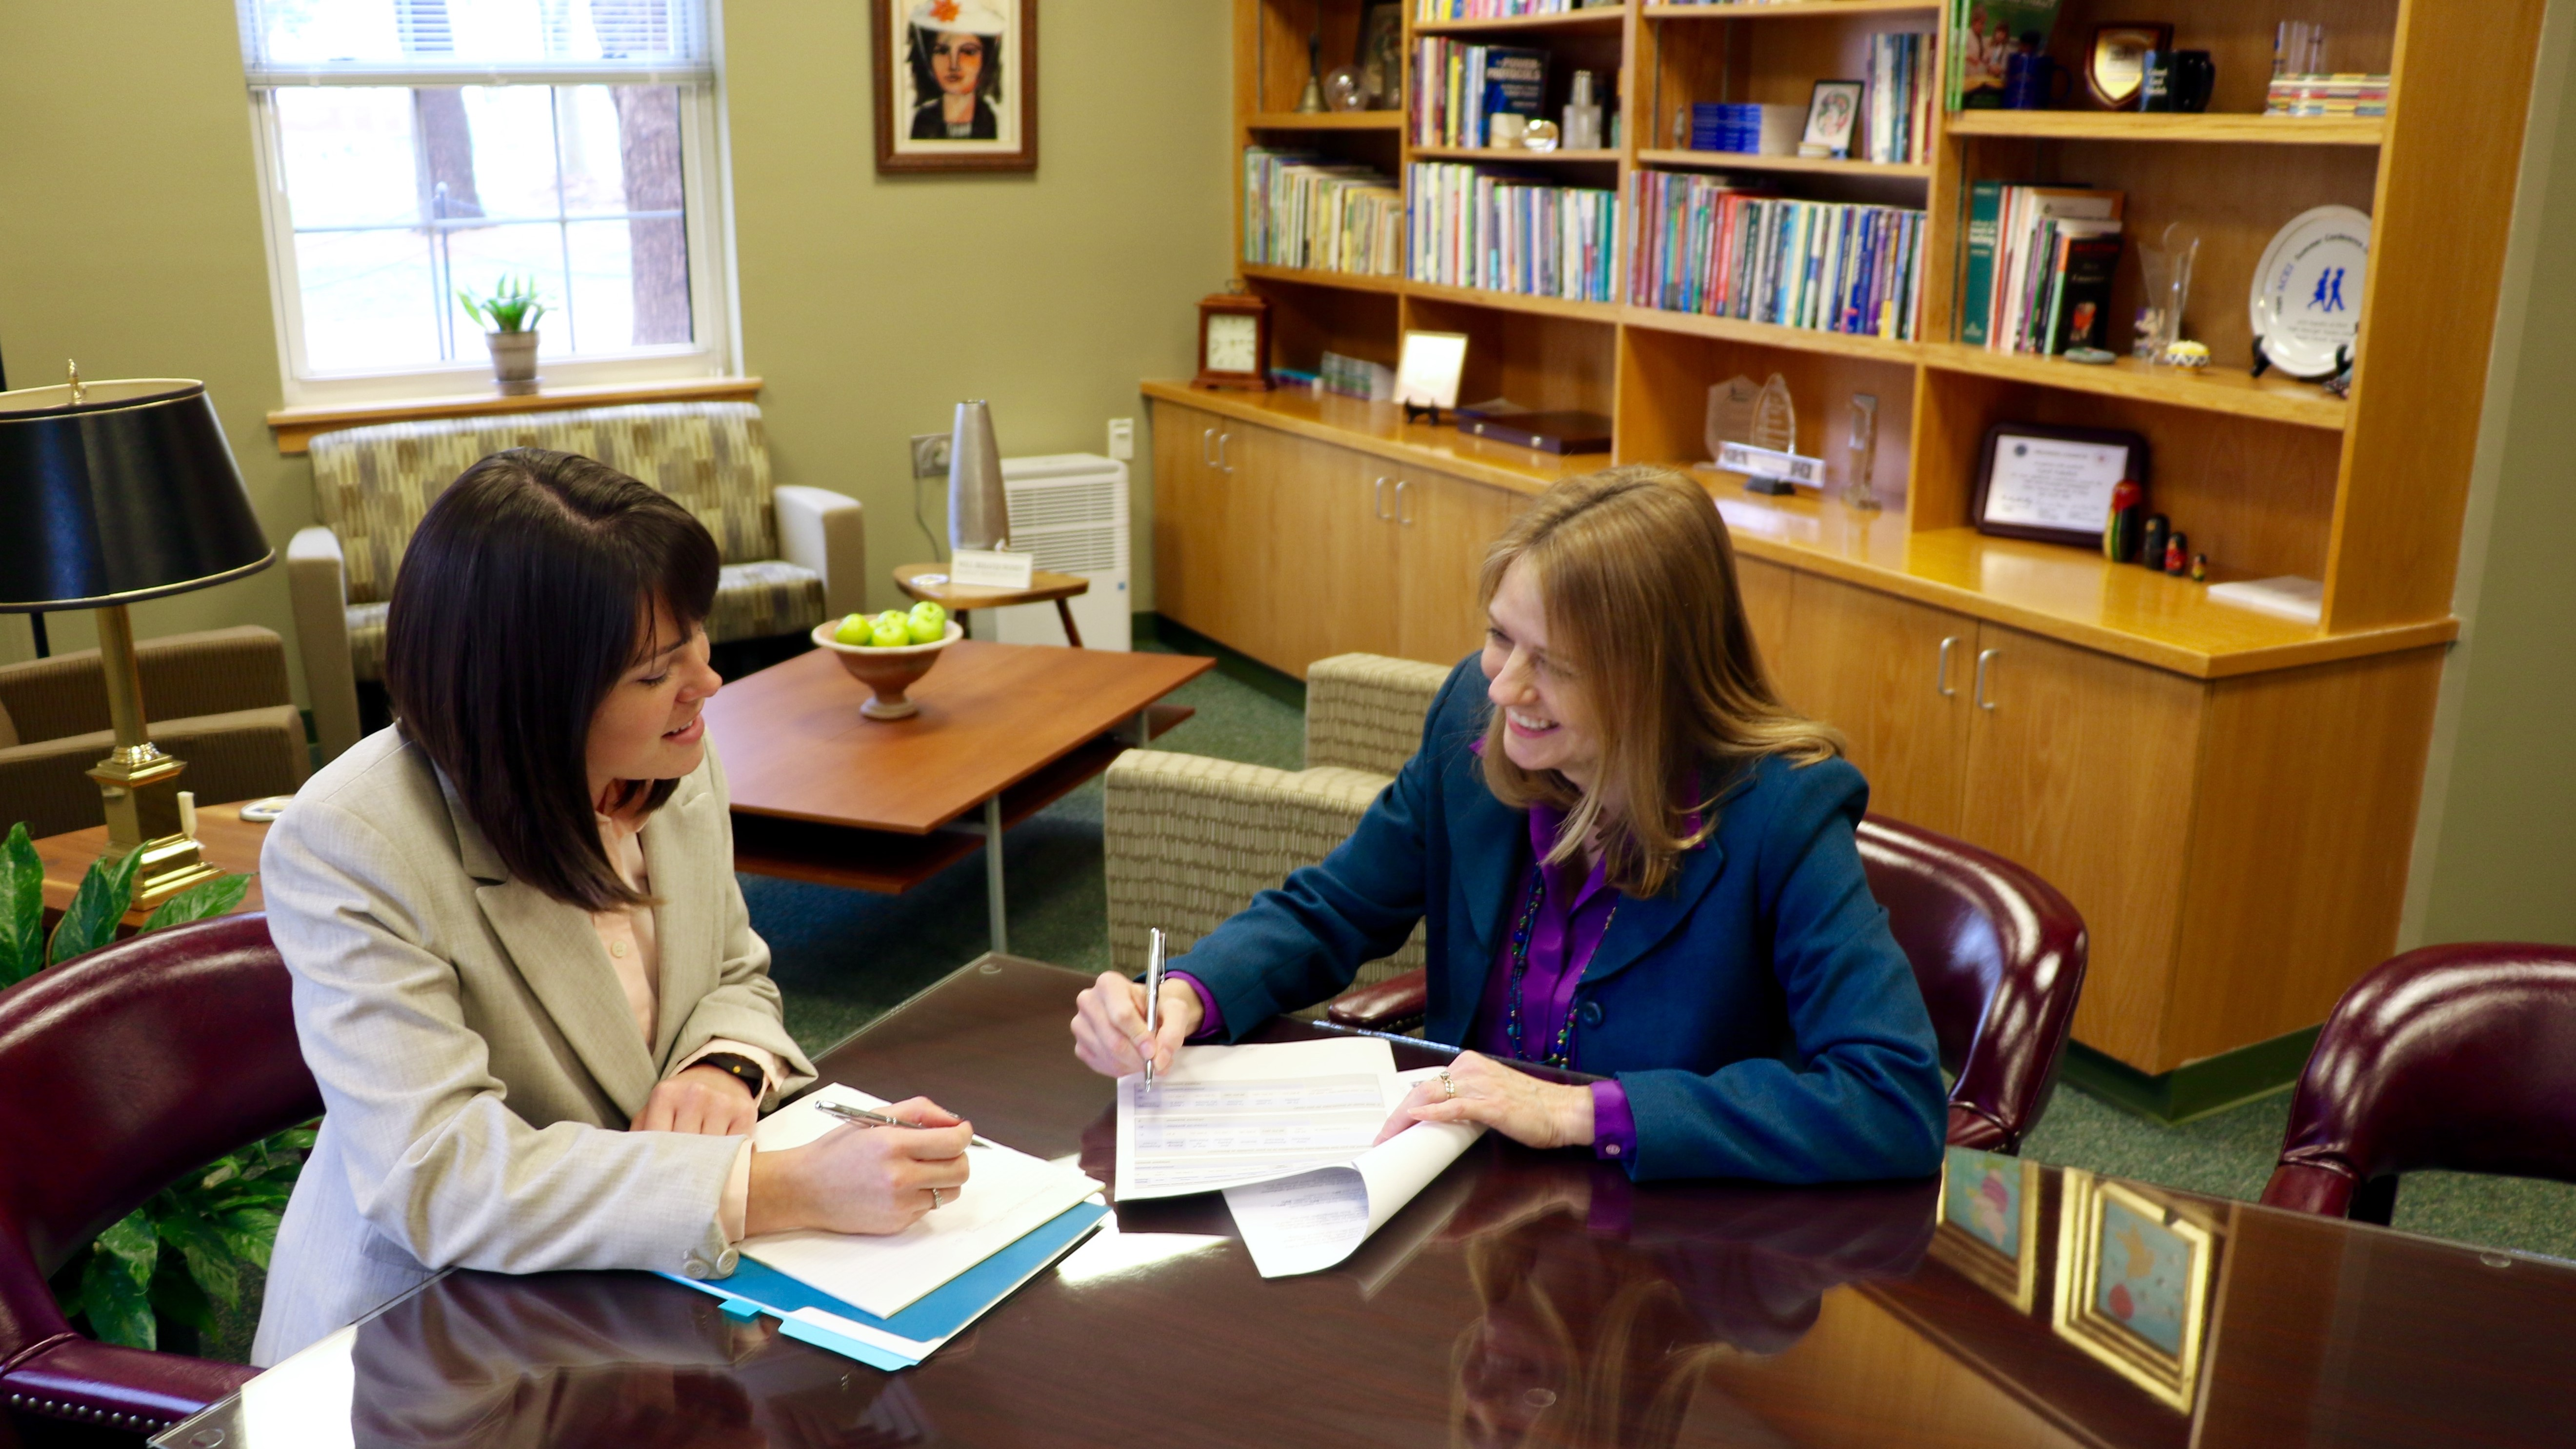 A CEHD advisor meets with a student in her office to discuss program offerings and course schedules.